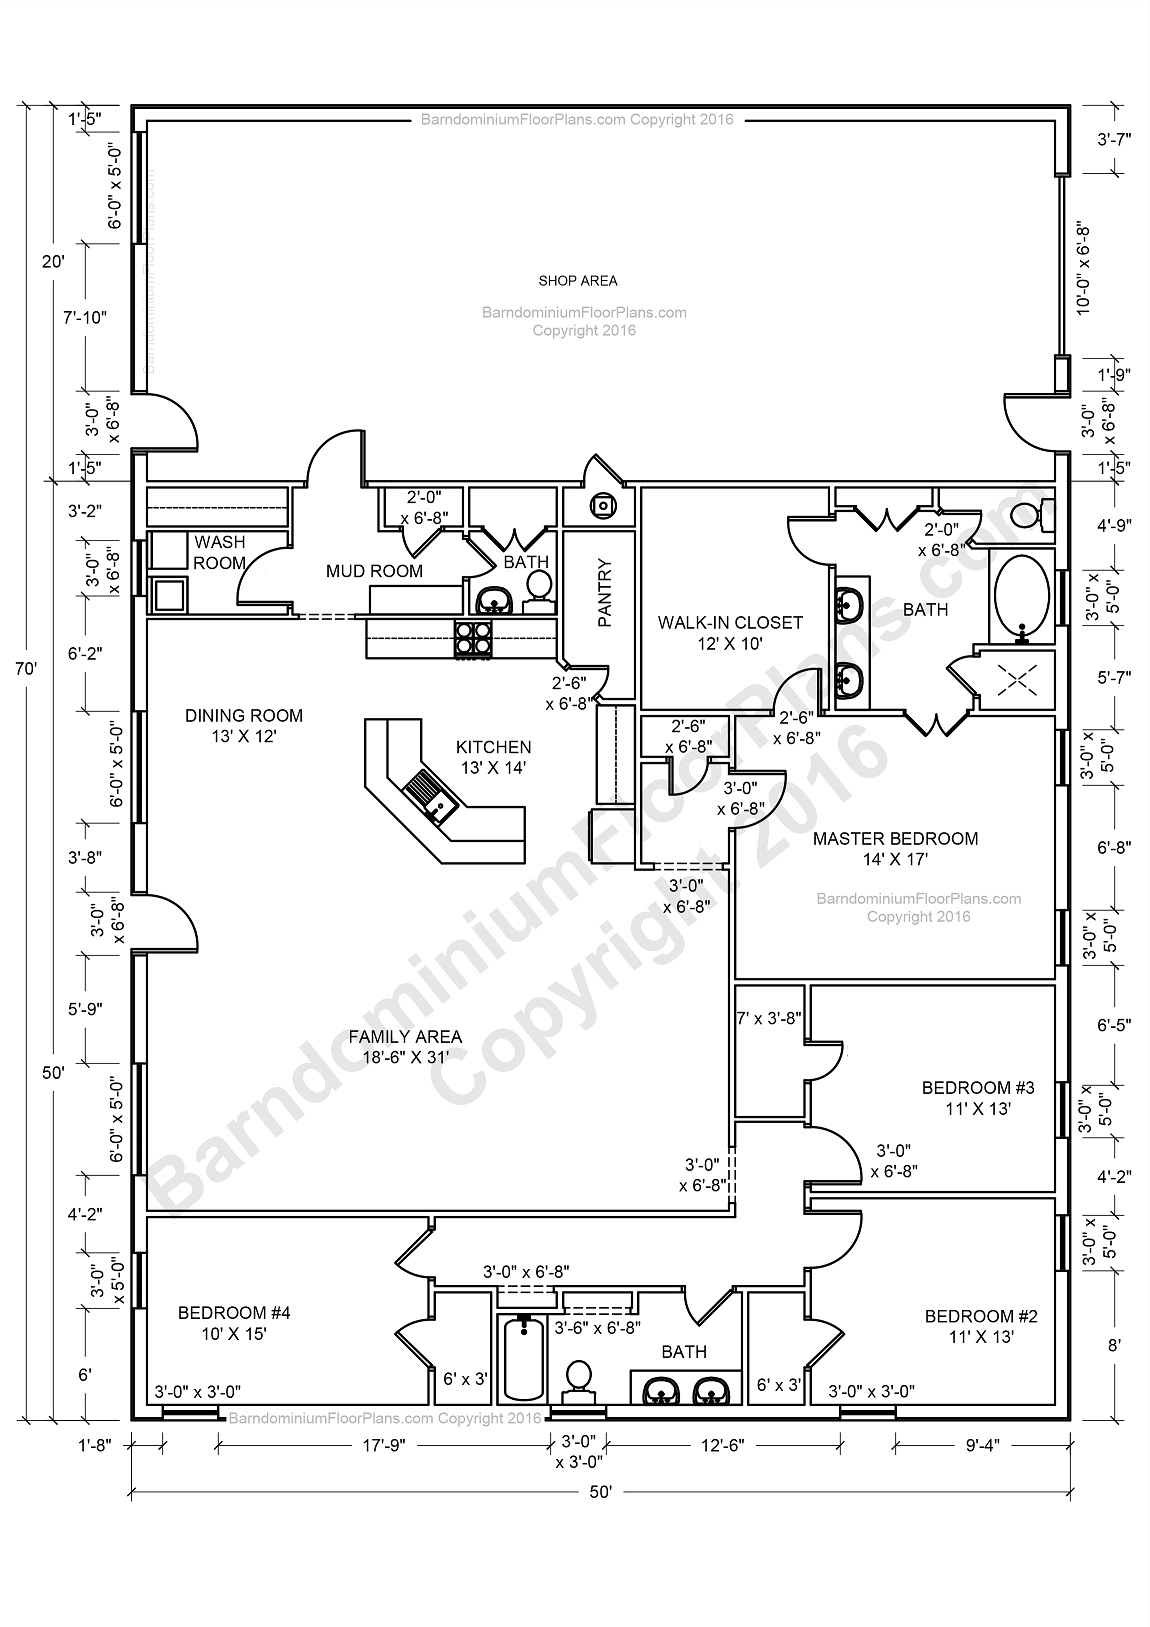 Barndominium floor plans barndominium floor plans 1 800 for Steel building home designs